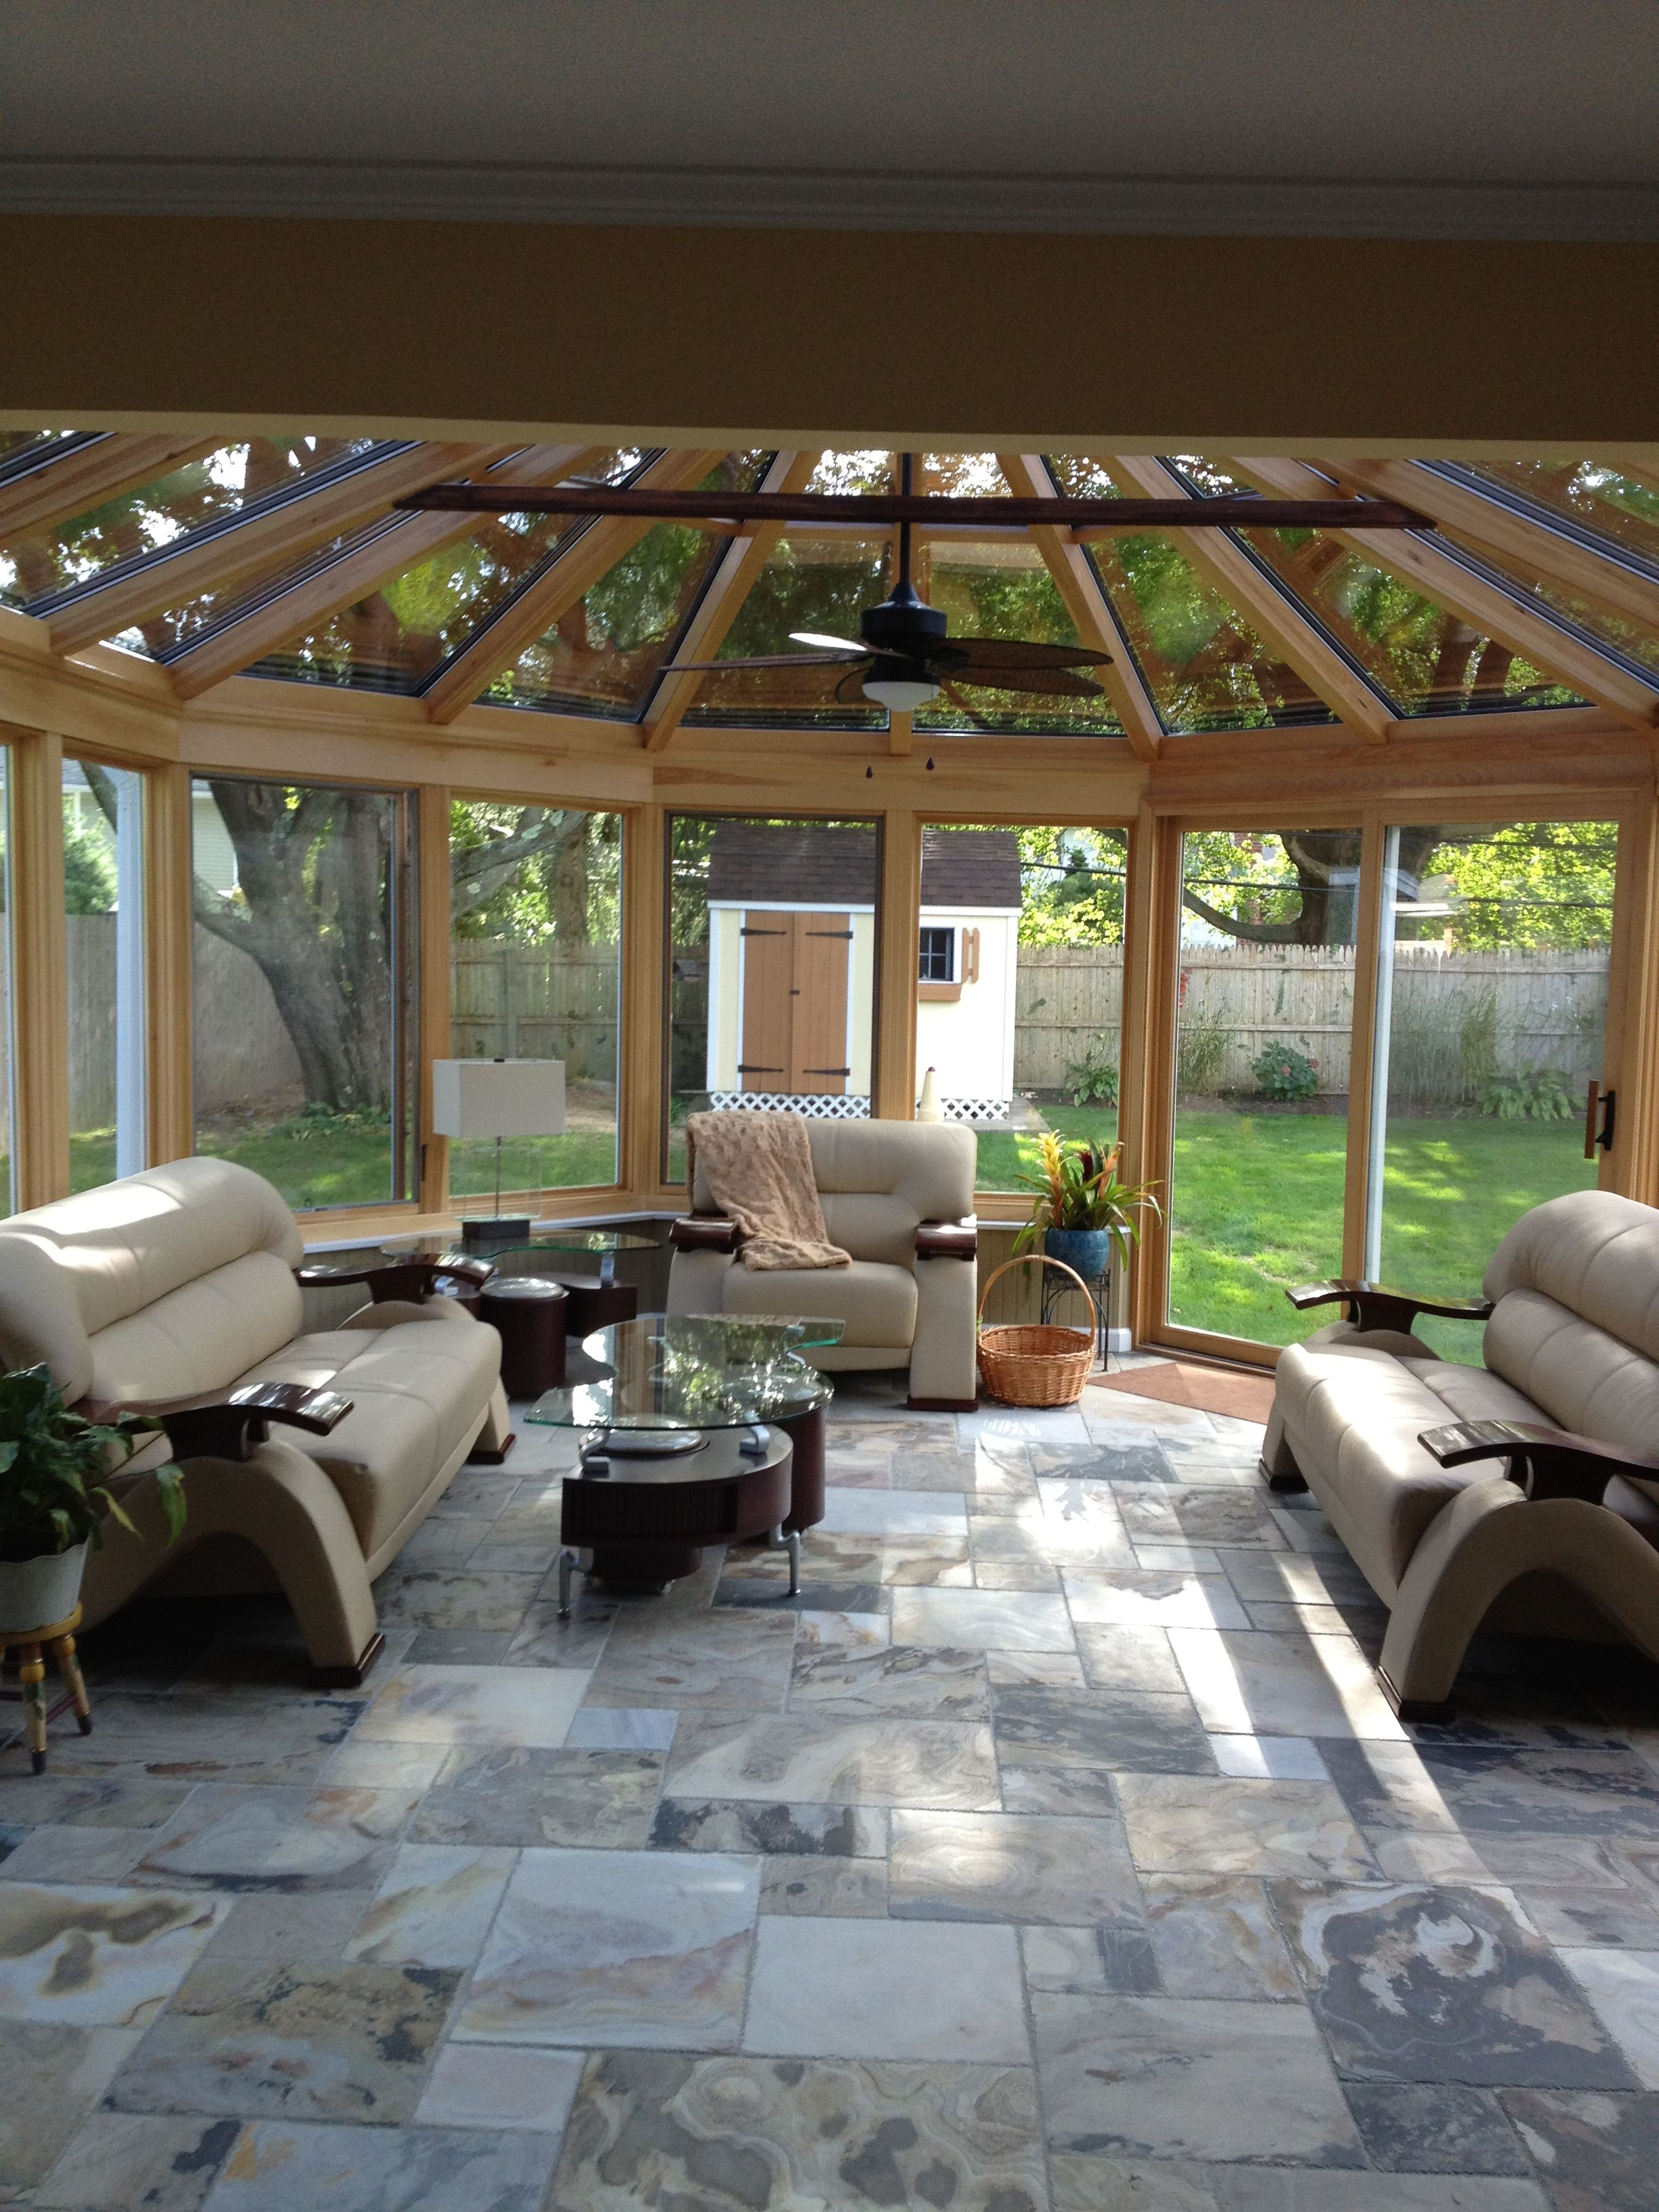 Home Additions Sunroom Decorating Four Seasons Room: Another Beautiful Sunroom Design By Four Seasons!